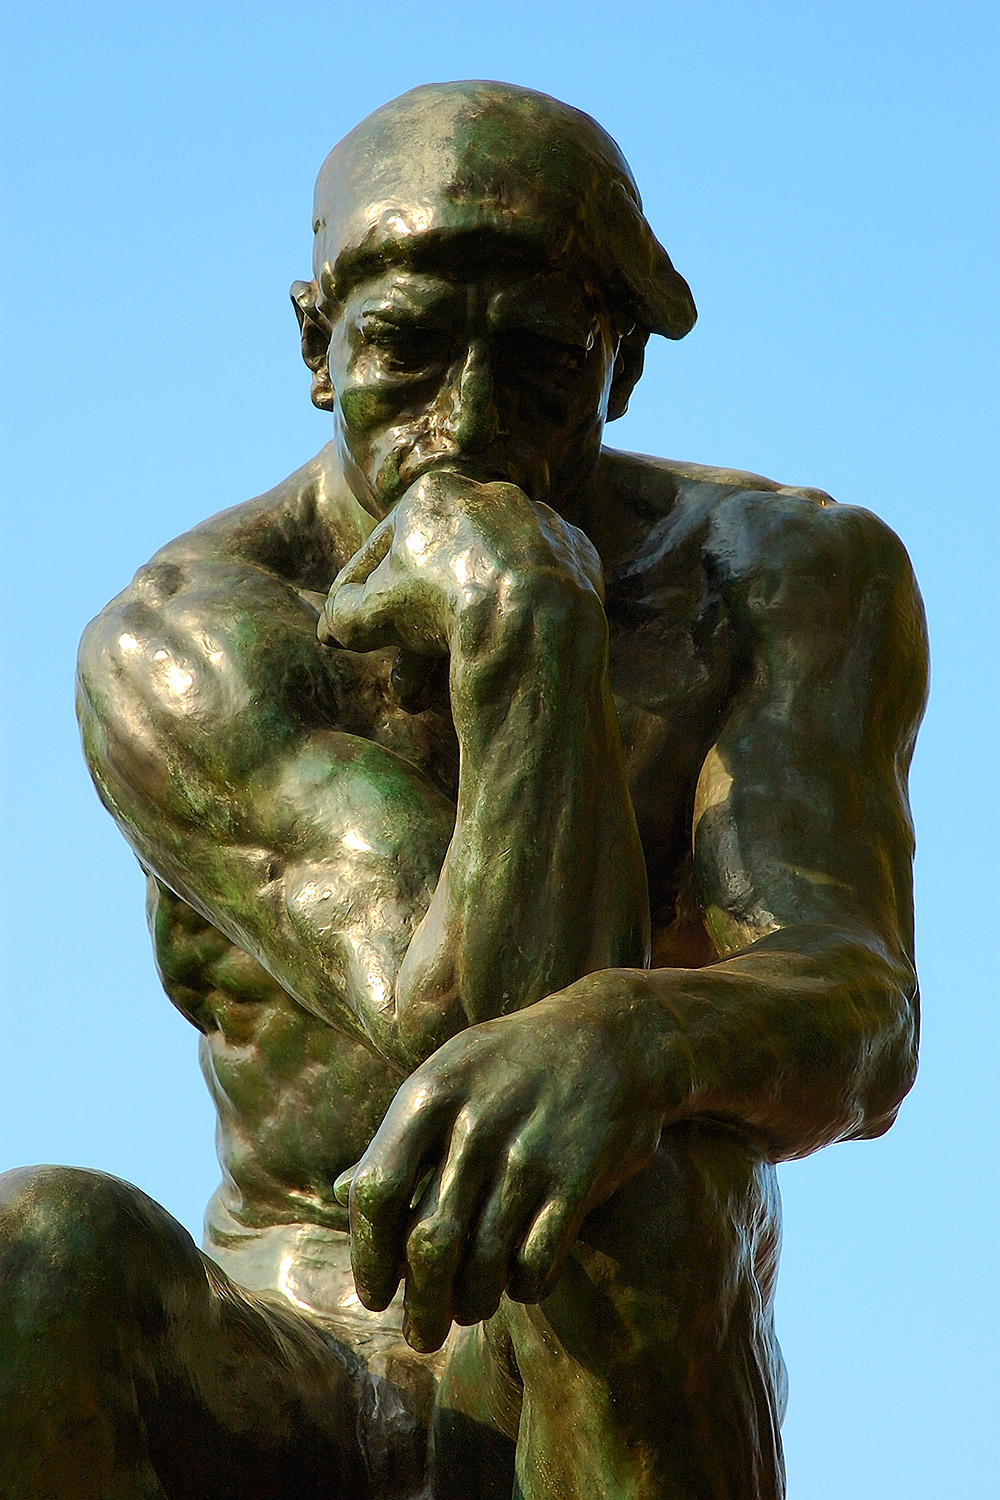 Rodin 2: The Thinker and other Figures